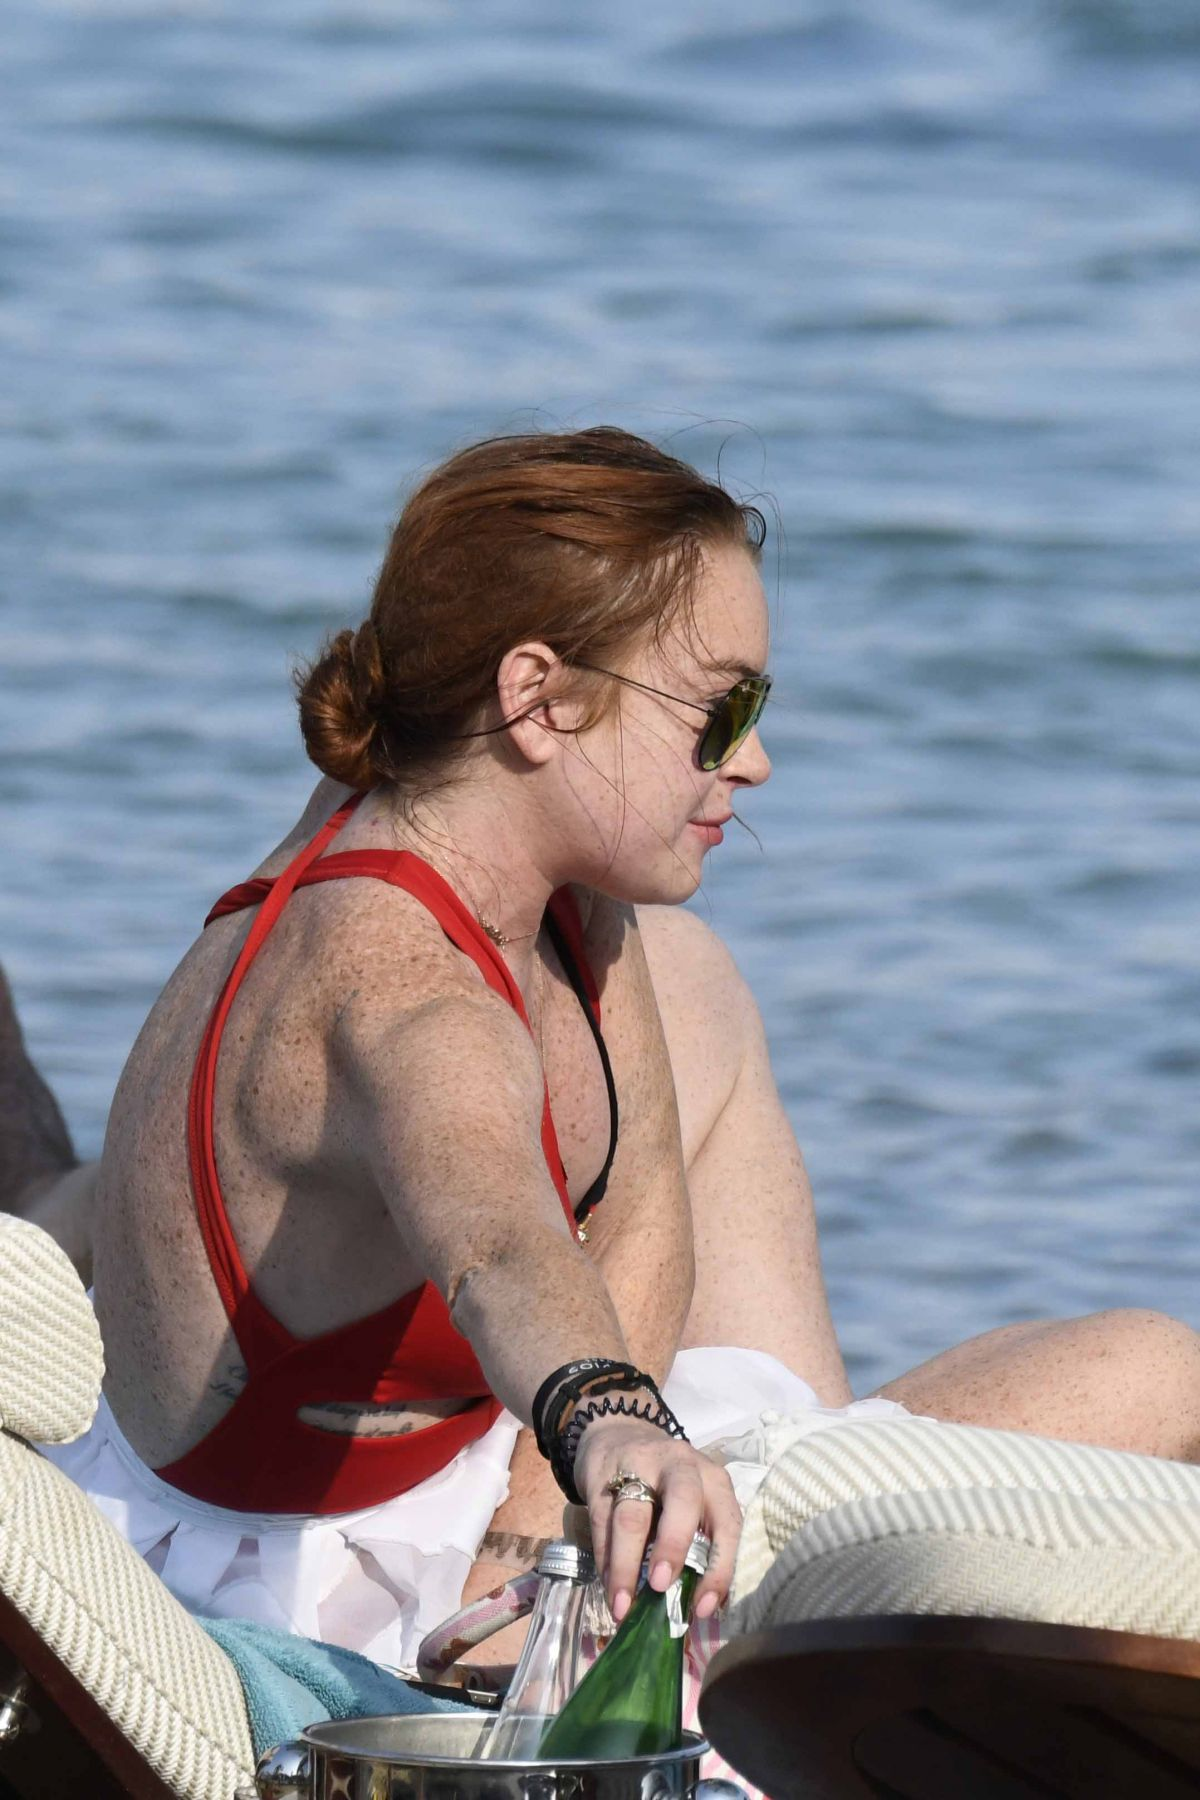 Lindsay Lohan: Actress Spotted With Mystery Man In